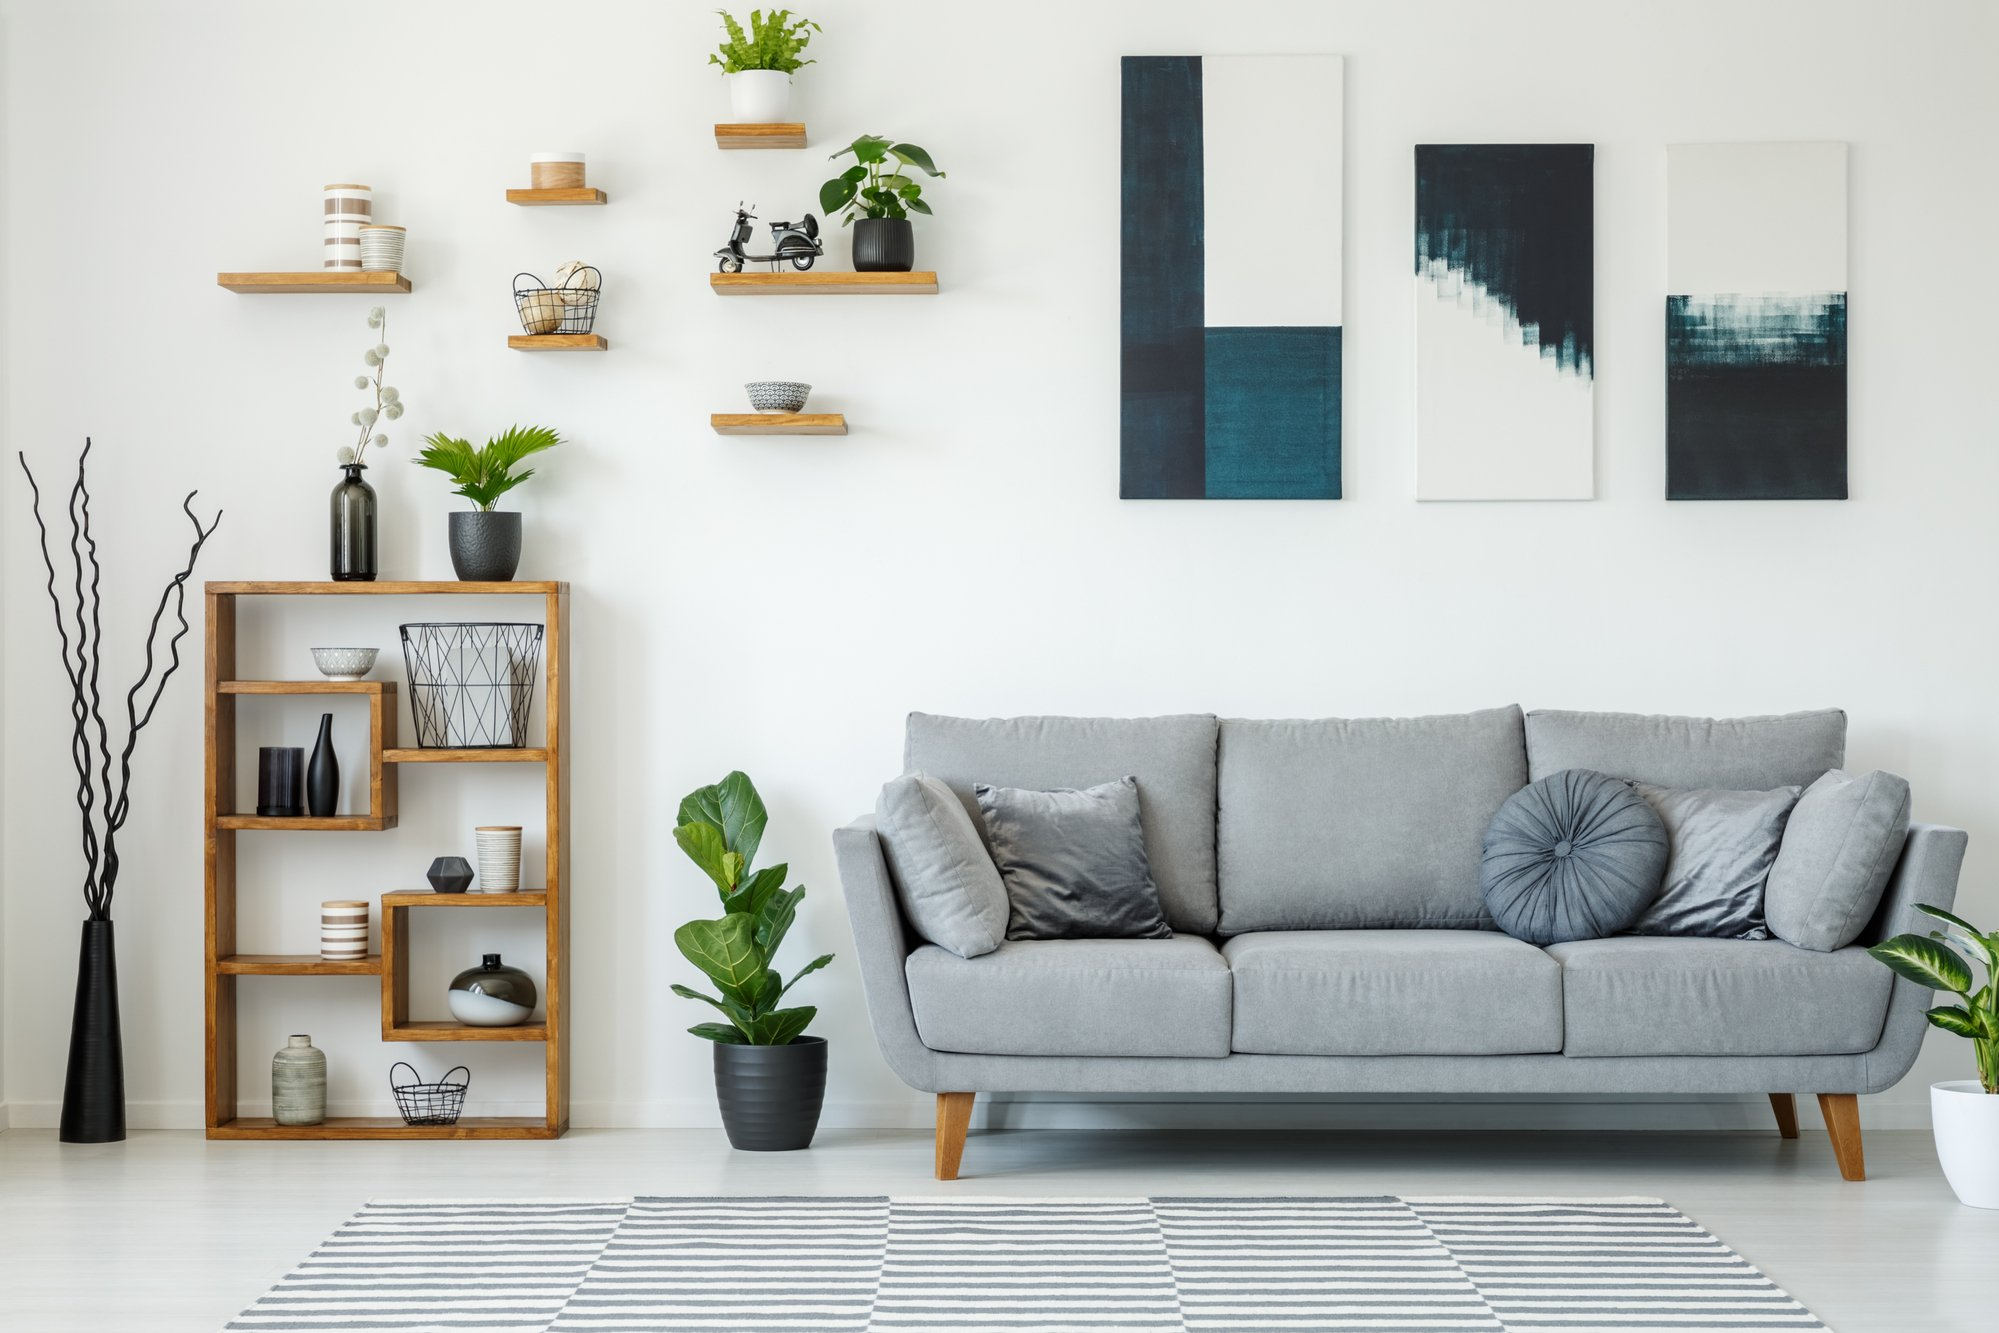 How To Use A Large Amount Of Wall Space To Your Advantage